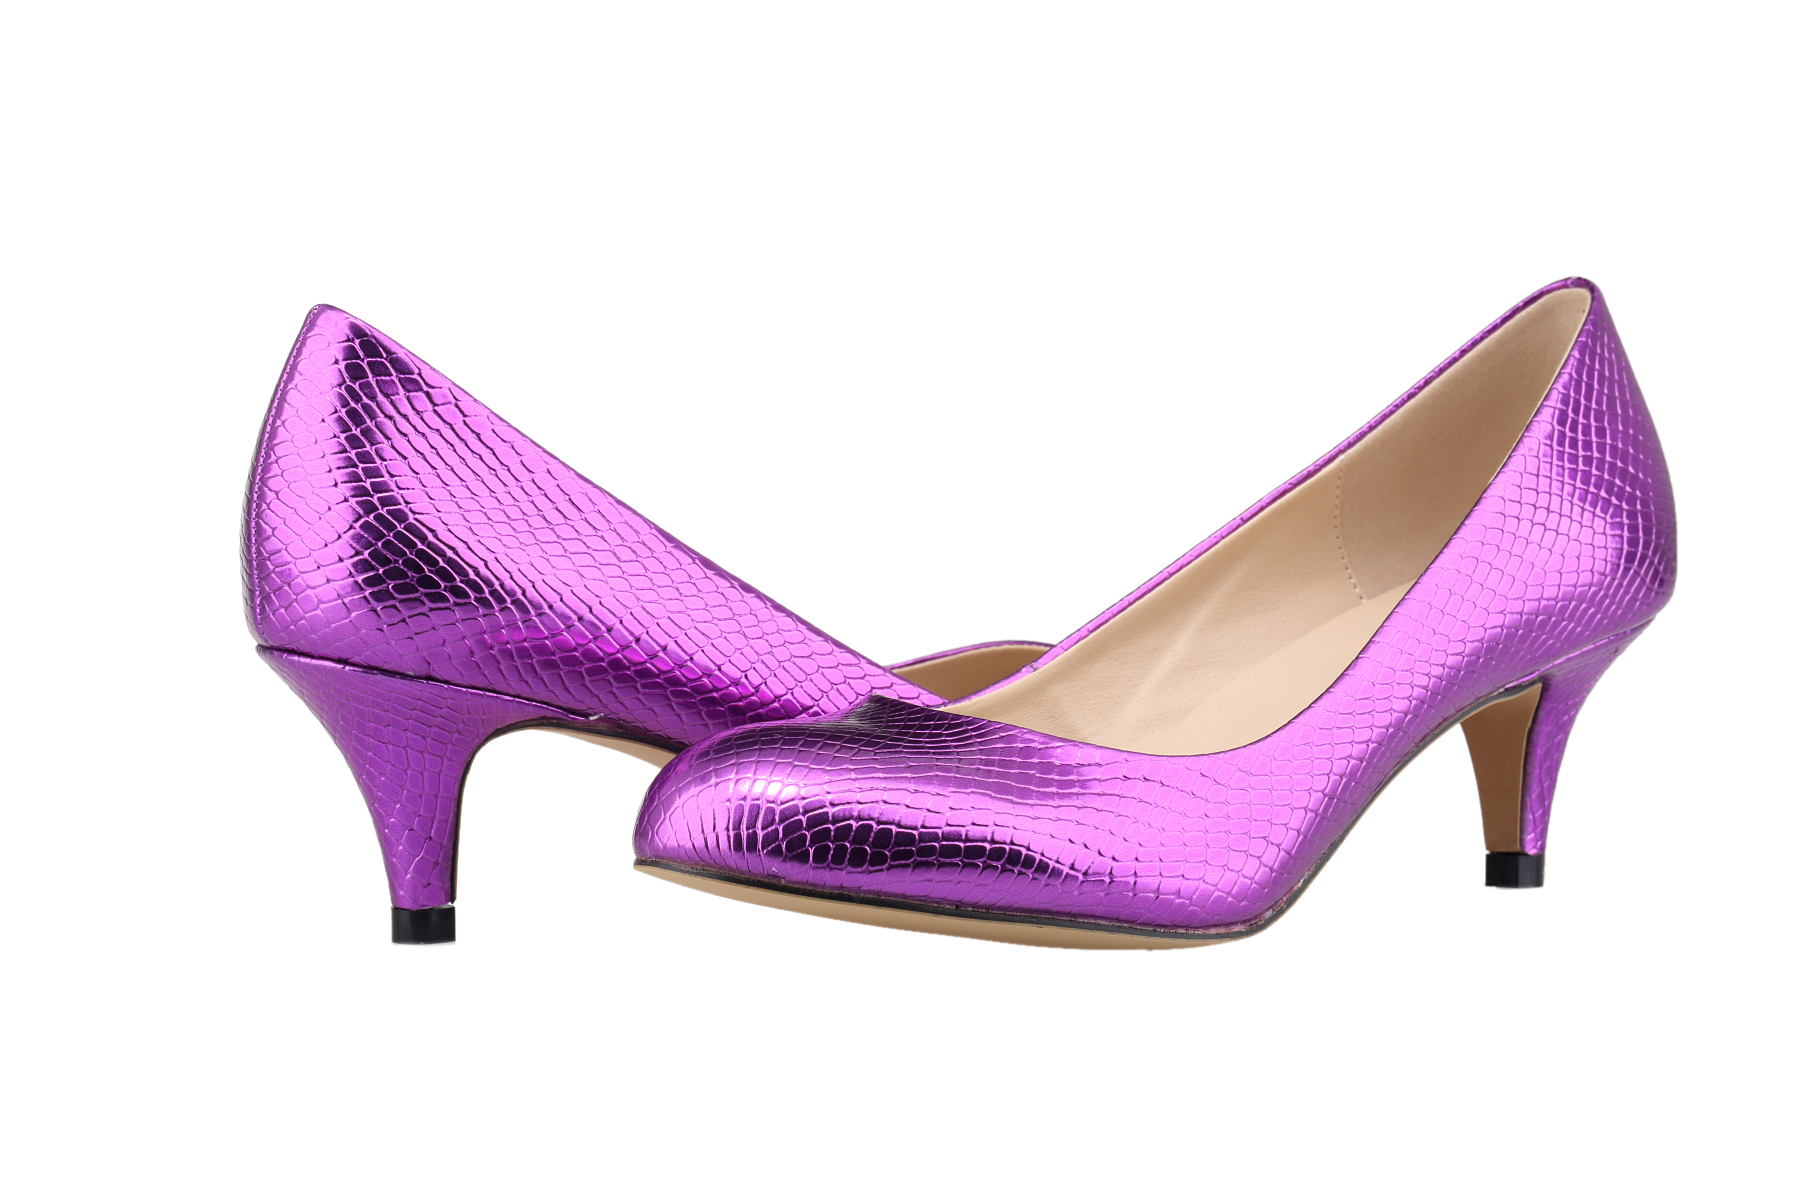 Ladies Shoes Women Pumps New Solid Tip High Heels Shoes -5881